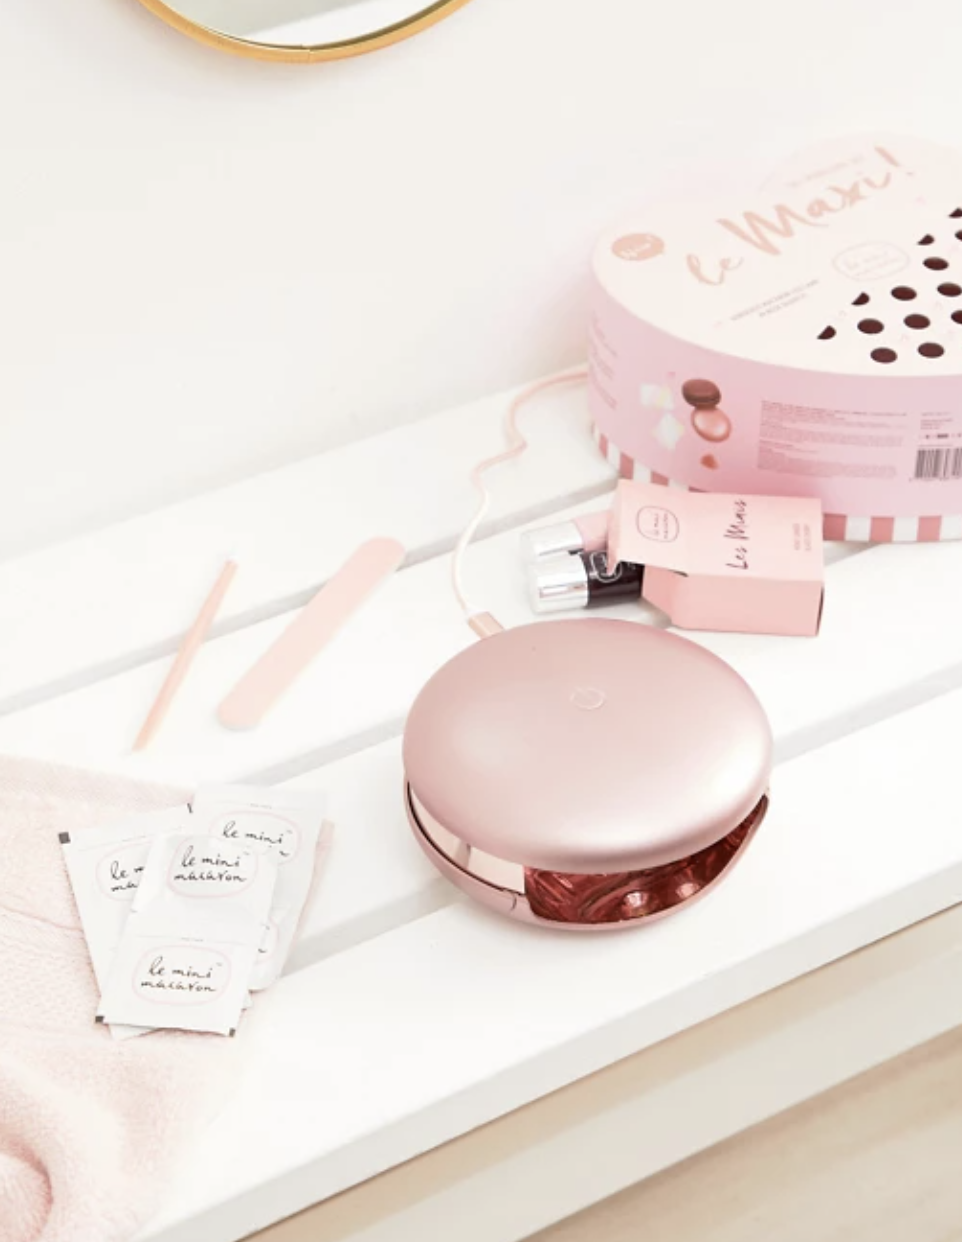 the pink gel manicure kit with a pink LED lamp and two gel nail polishes on table